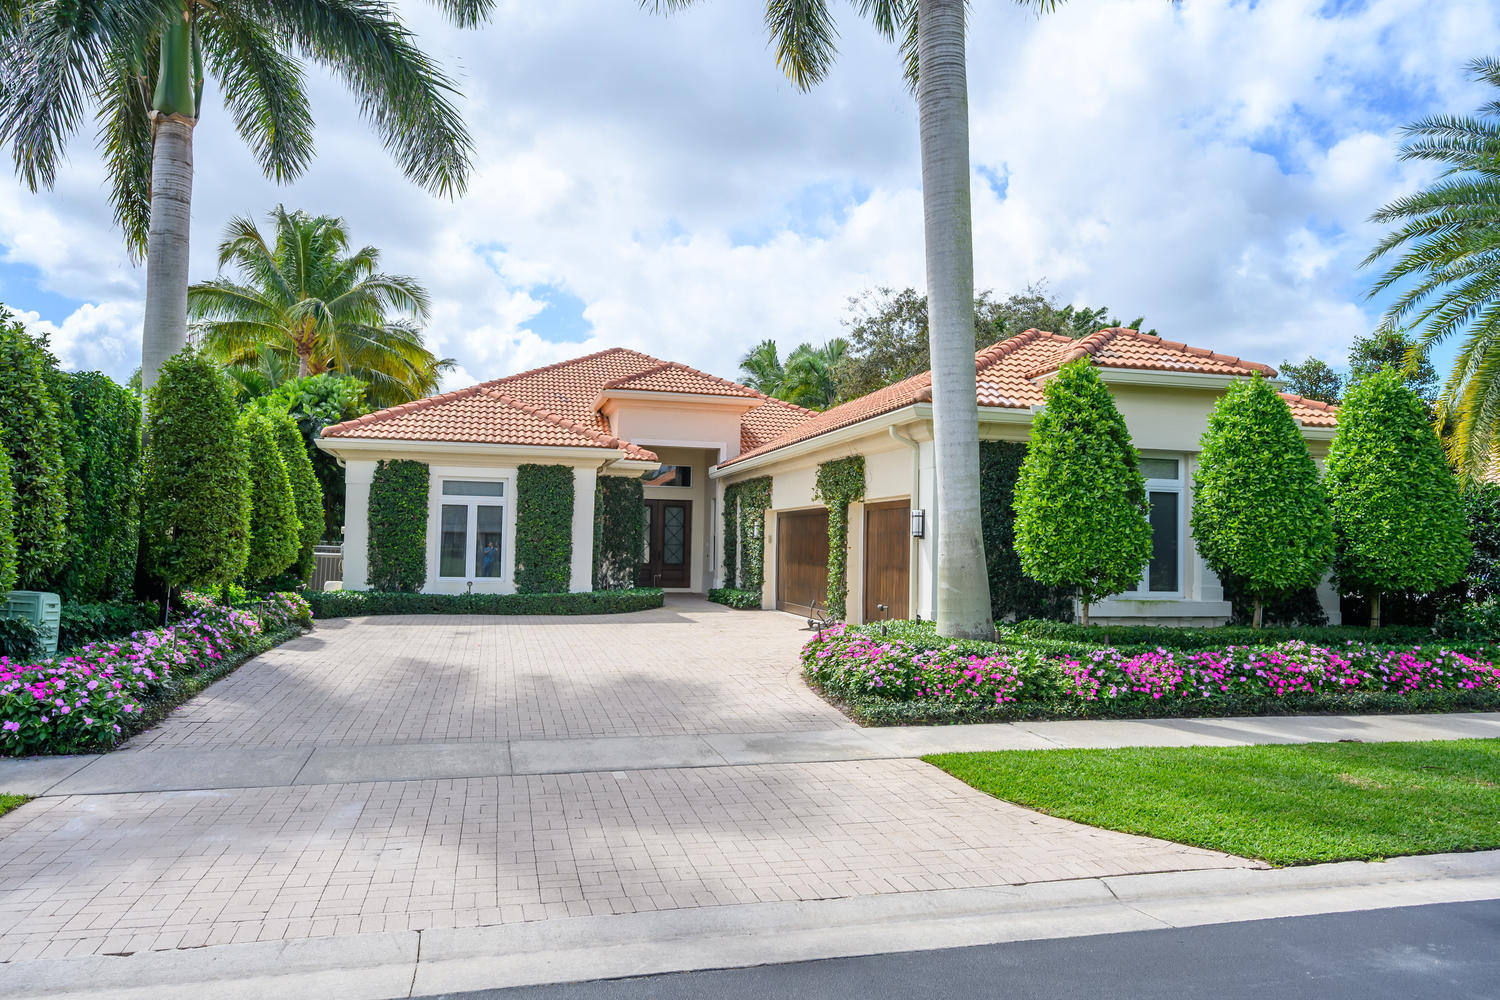 14294 Stroller Way, Wellington, Florida 33414, 4 Bedrooms Bedrooms, ,4.1 BathroomsBathrooms,Single Family,For Sale,Equestrian Club Estates,Stroller,1,RX-10605119